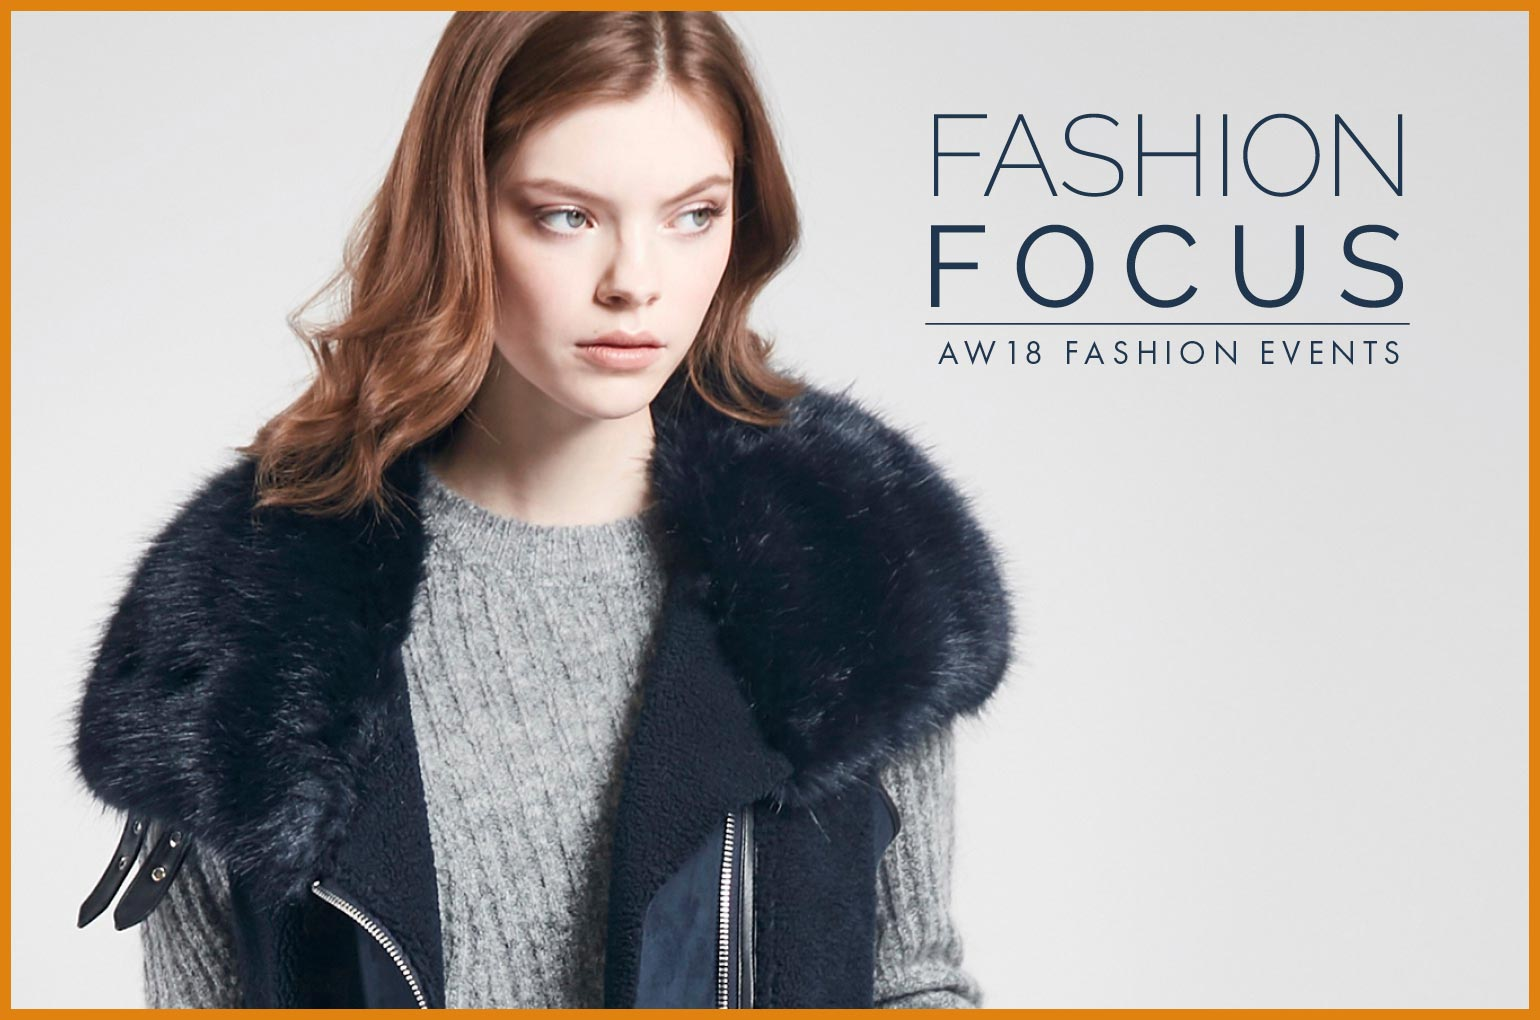 Fashion Focus at Hoopers Wilmslow